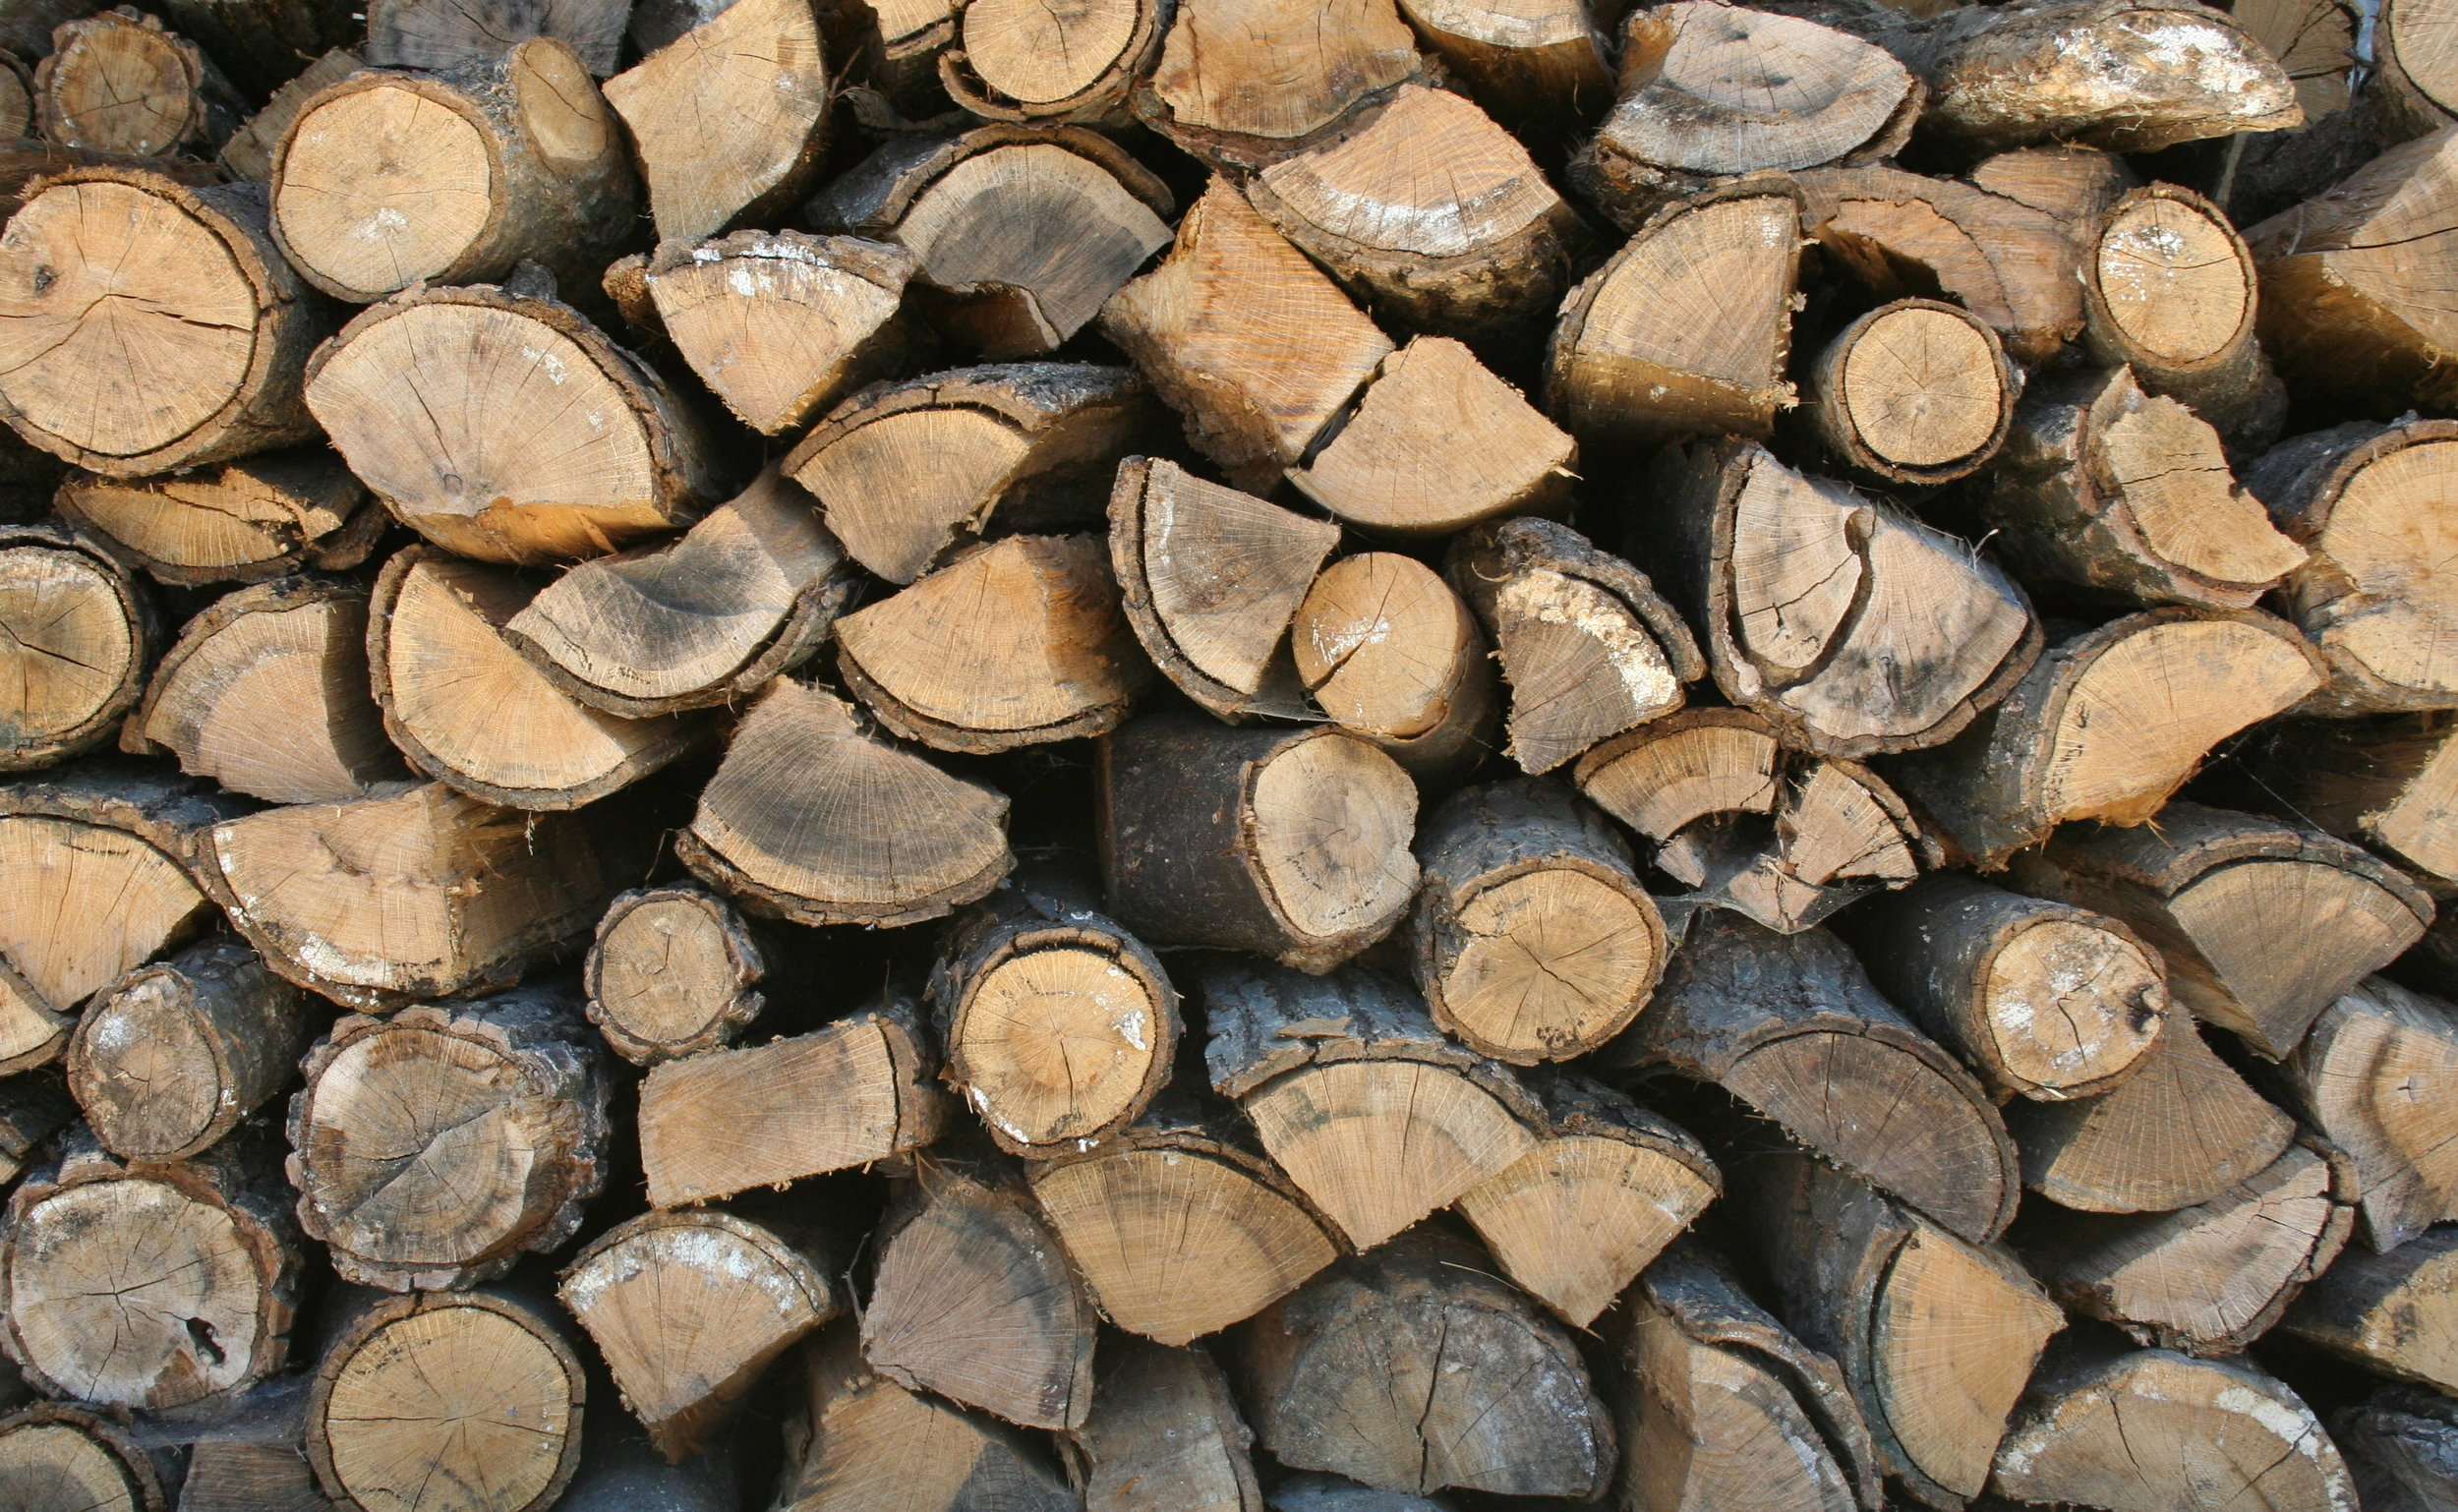 Seasoned Firewood   Firewood for bonfires. $65.00/ face cord.